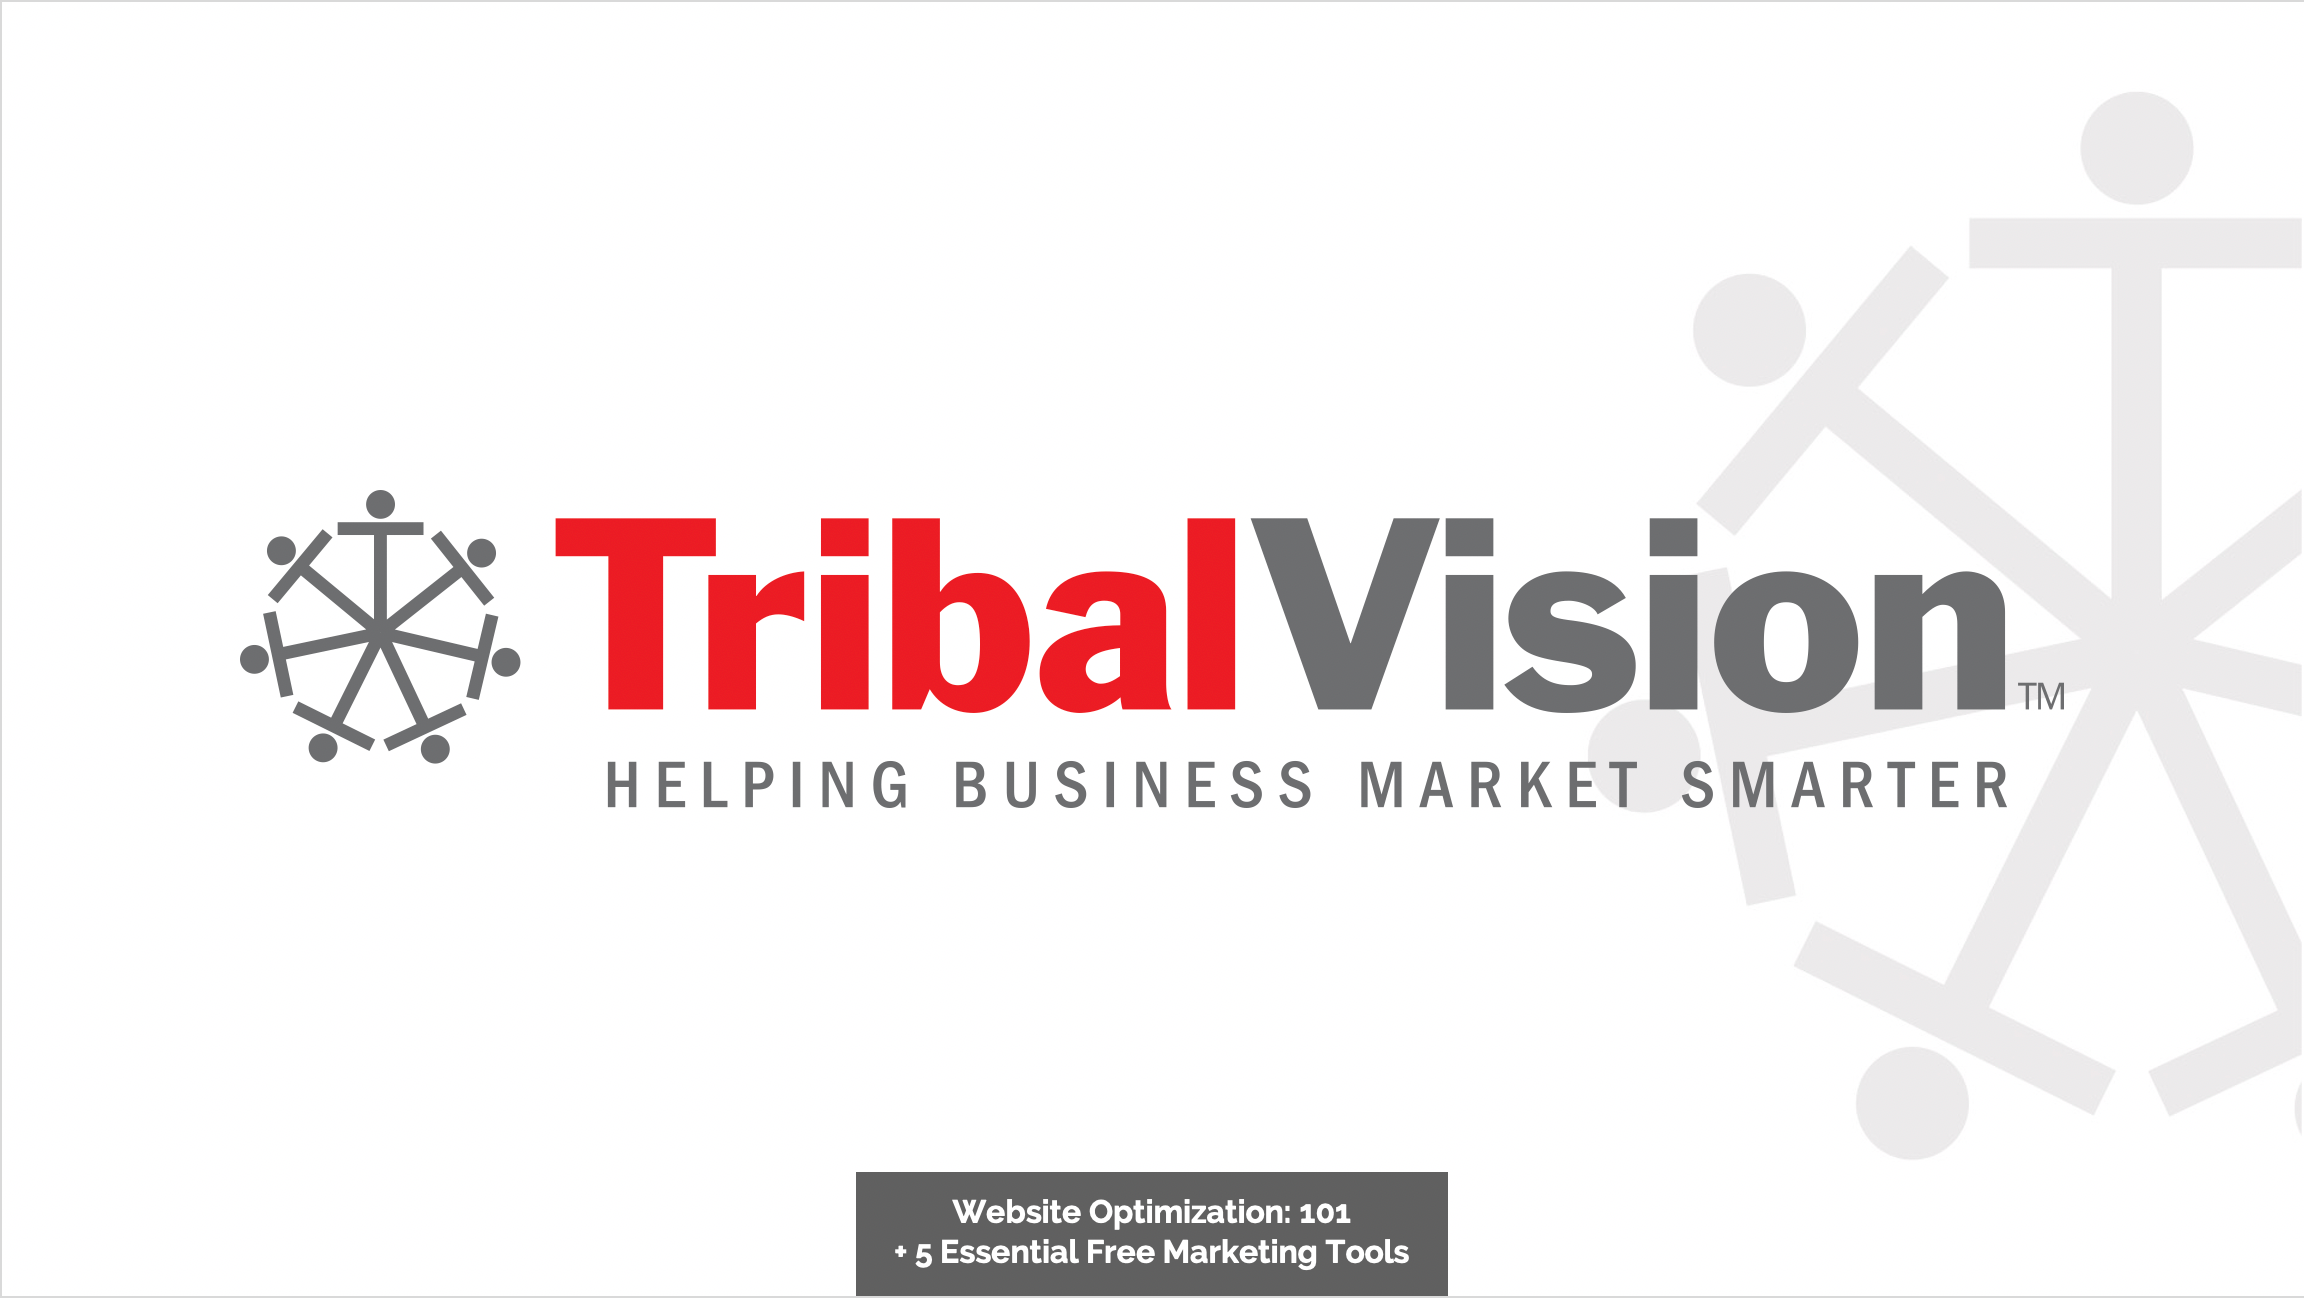 TribalVisions-webinar-about-optimization-and-free-marketing-tools